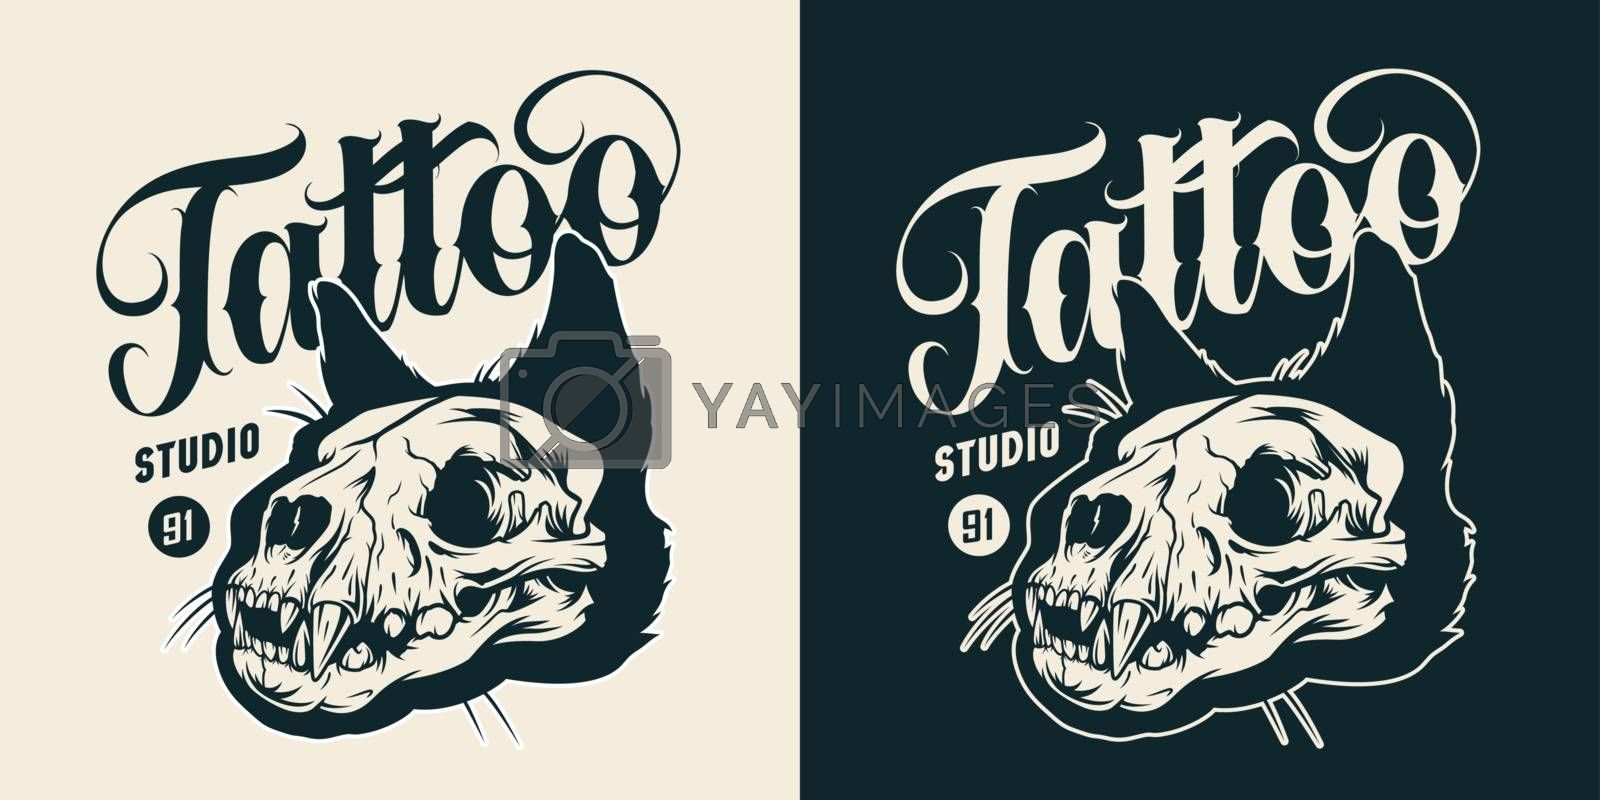 Tattoo studio monochrome vintage badge with cat skull and inscription isolated vector illustration